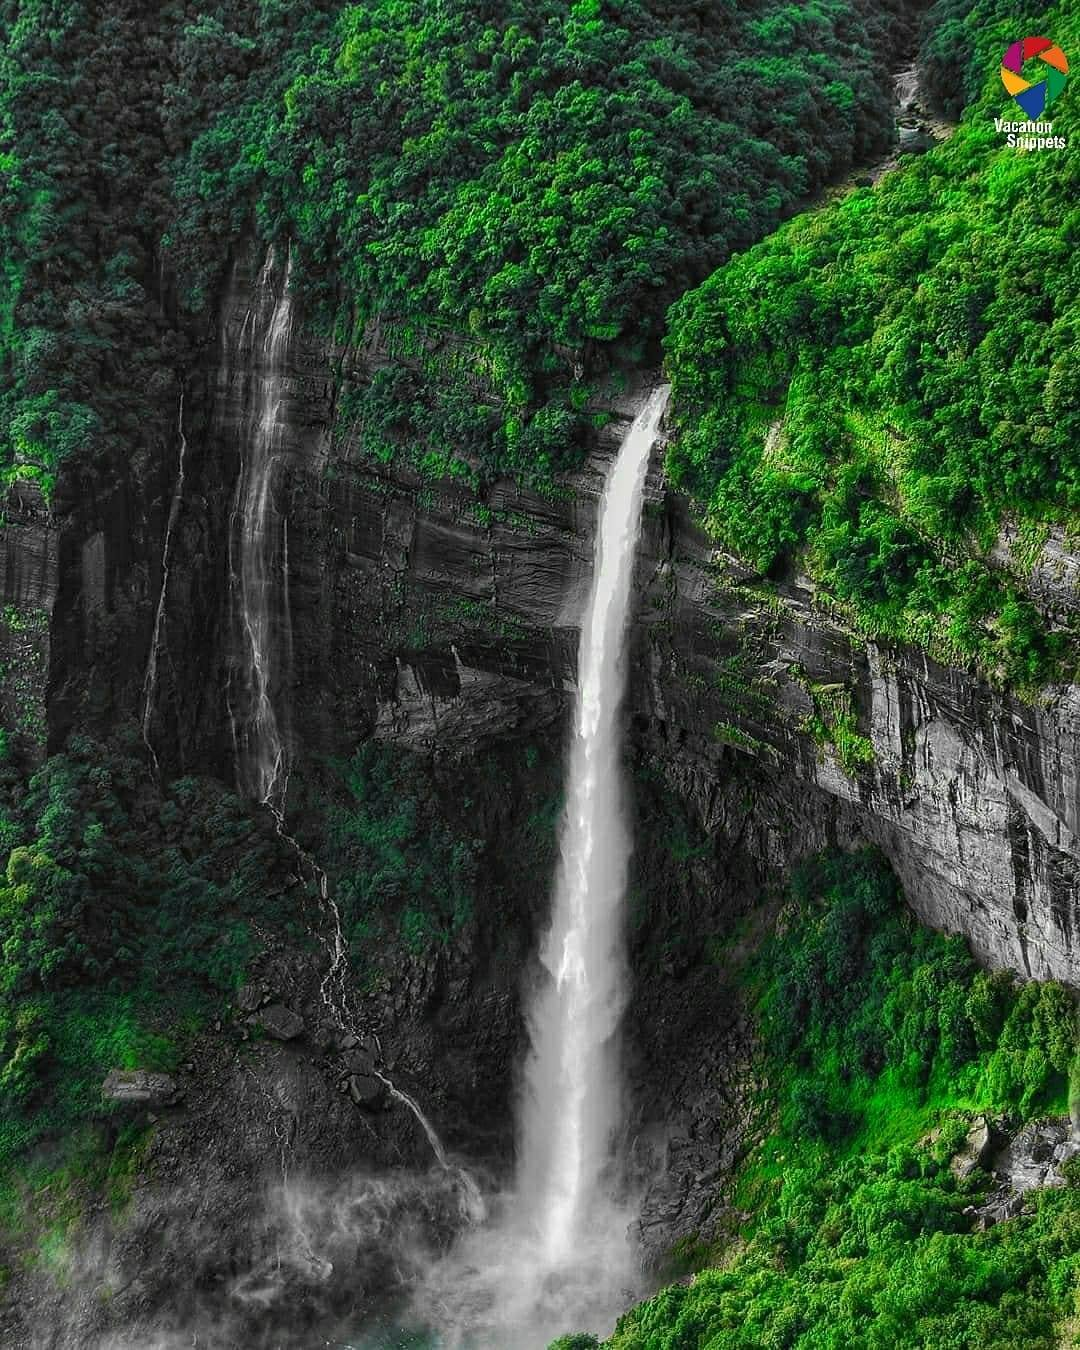 Fantastic 5 Days vacations in lovely Meghalaya – Part1